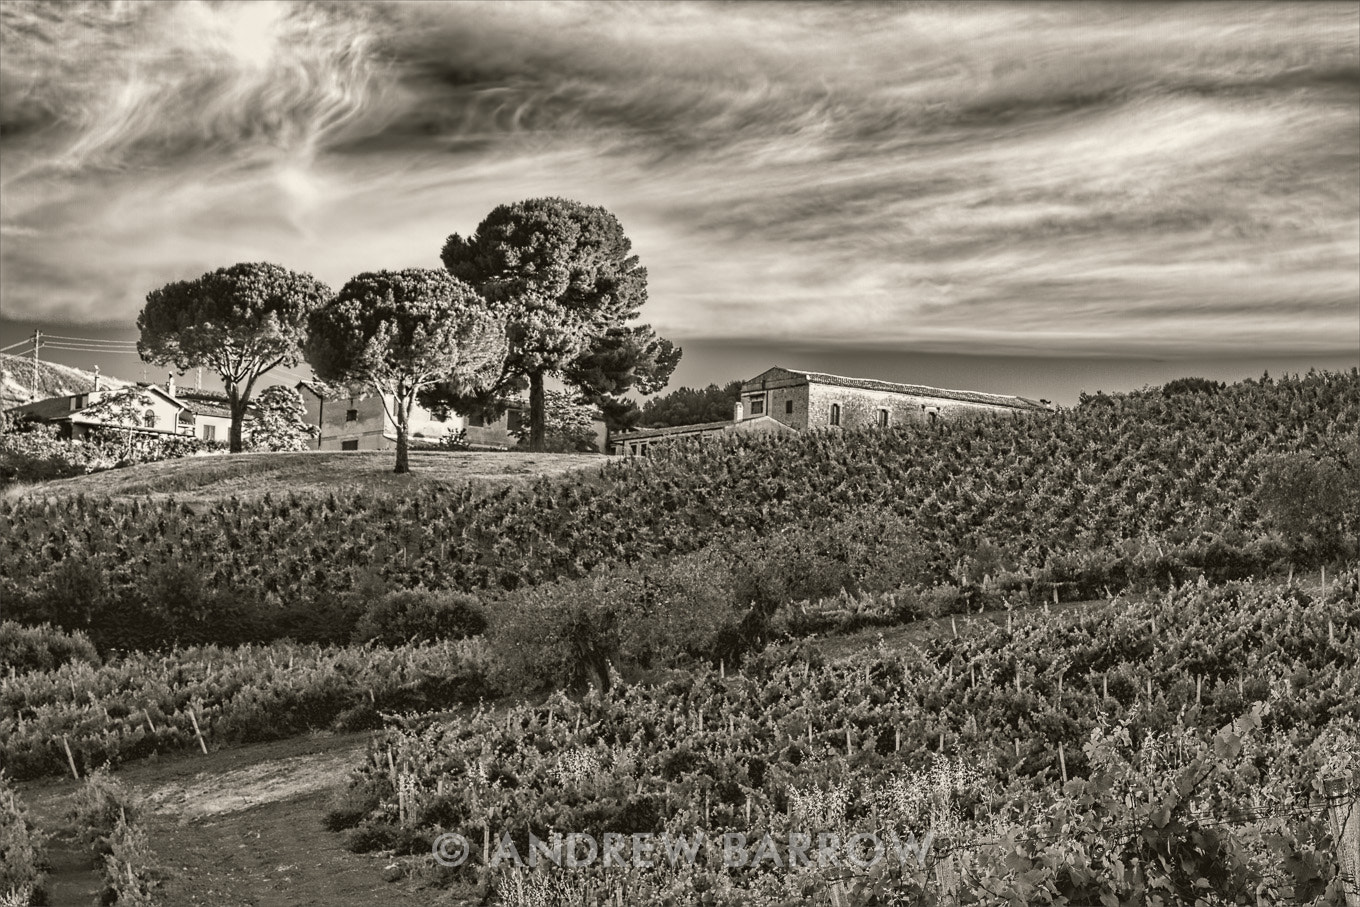 Photograph The Winery, Vines and Vineyards of Tasca d'Almerita, Sicily by Andrew Barrow ARPS on 500px